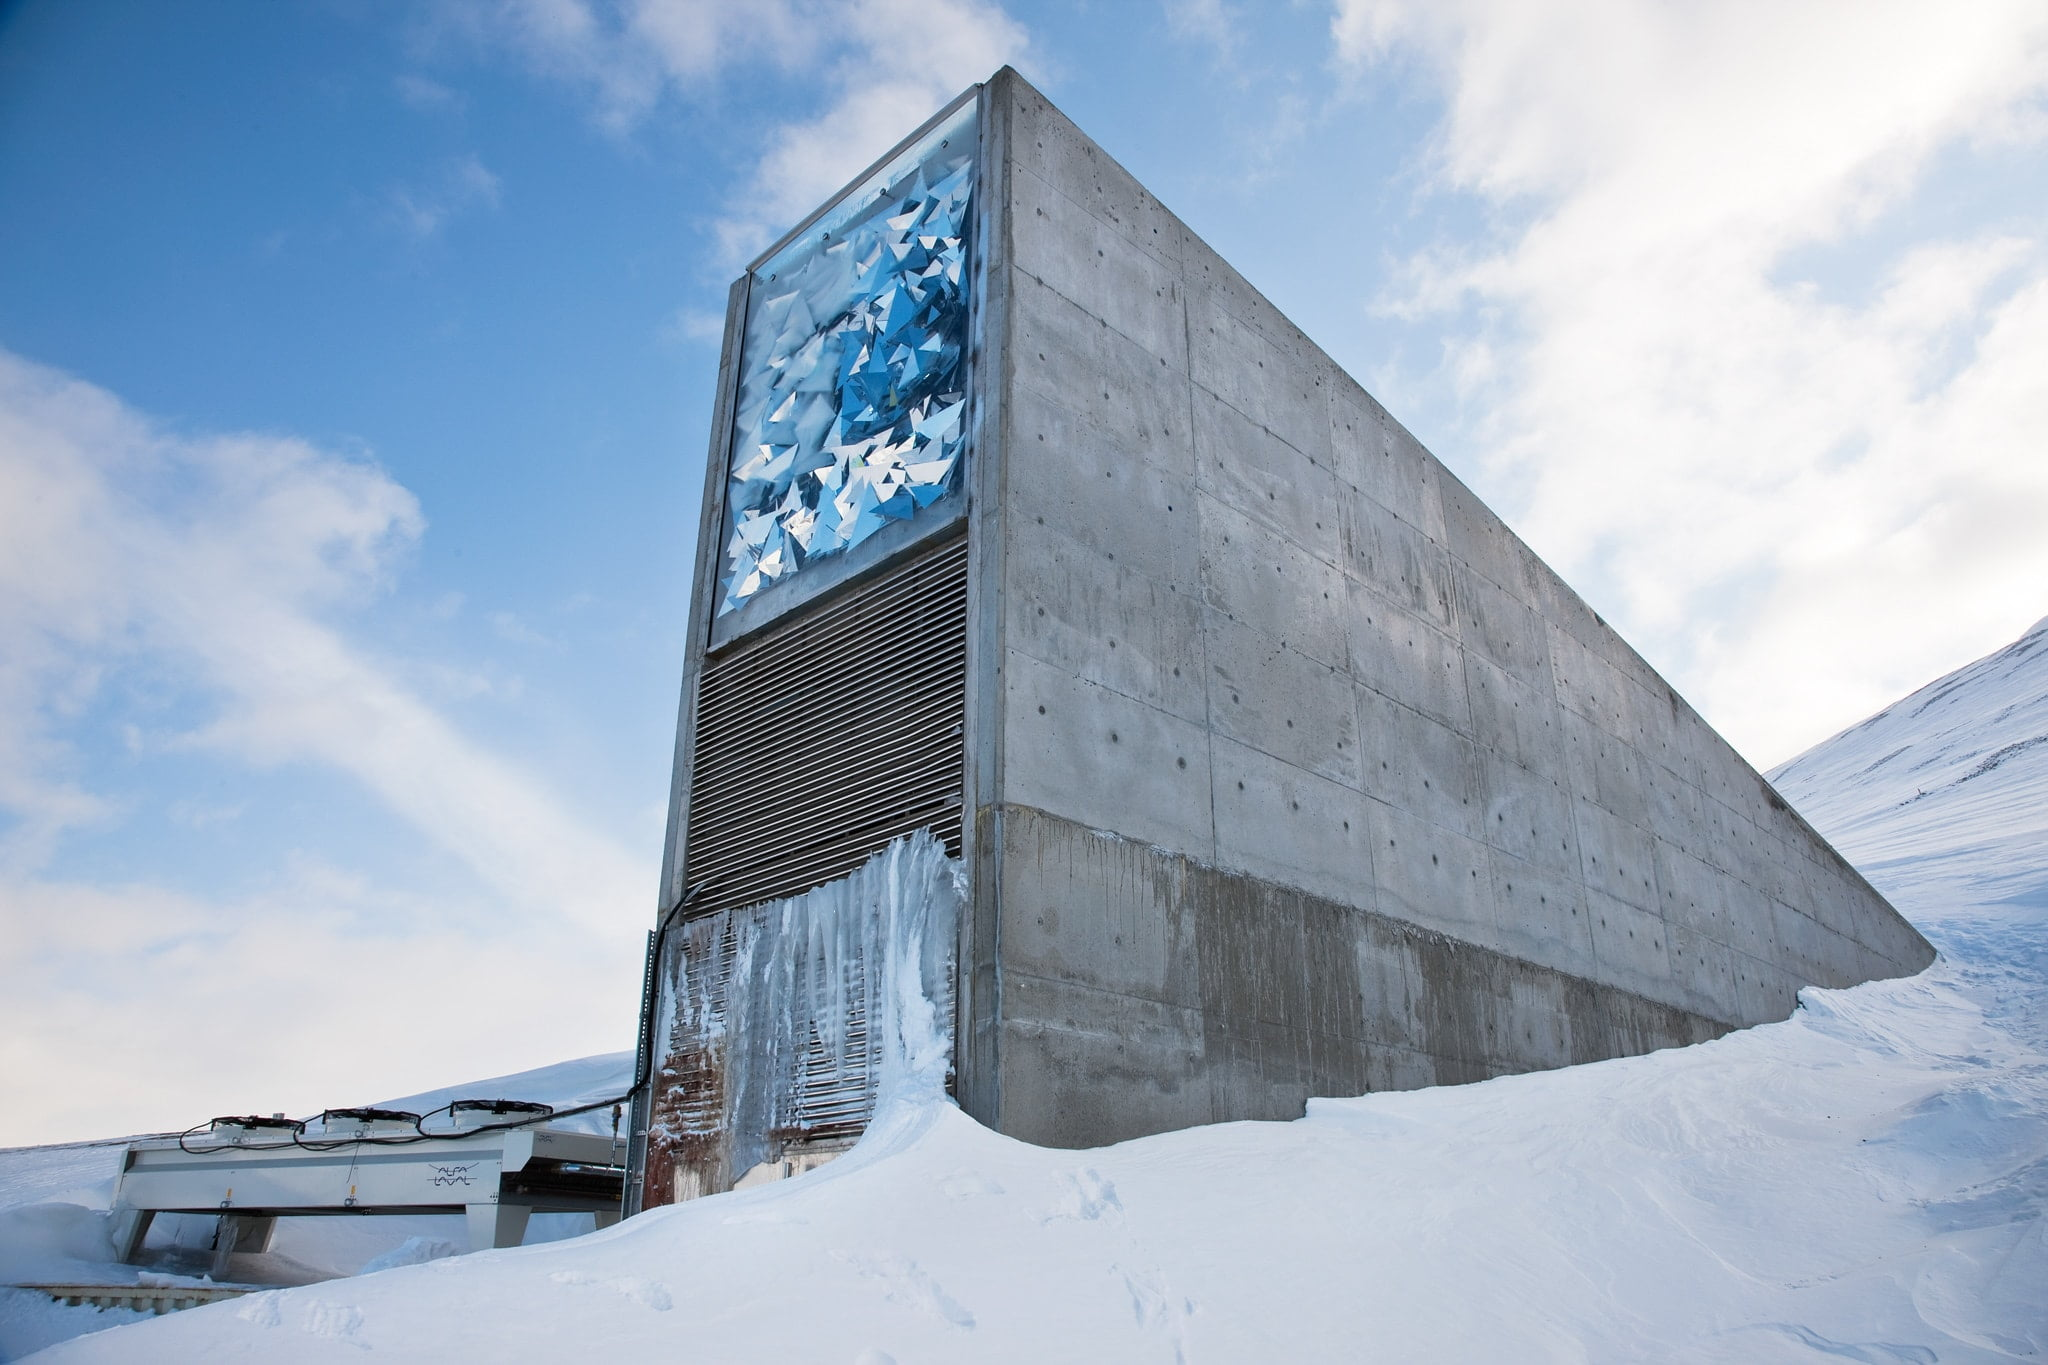 doomsday vault the last resort